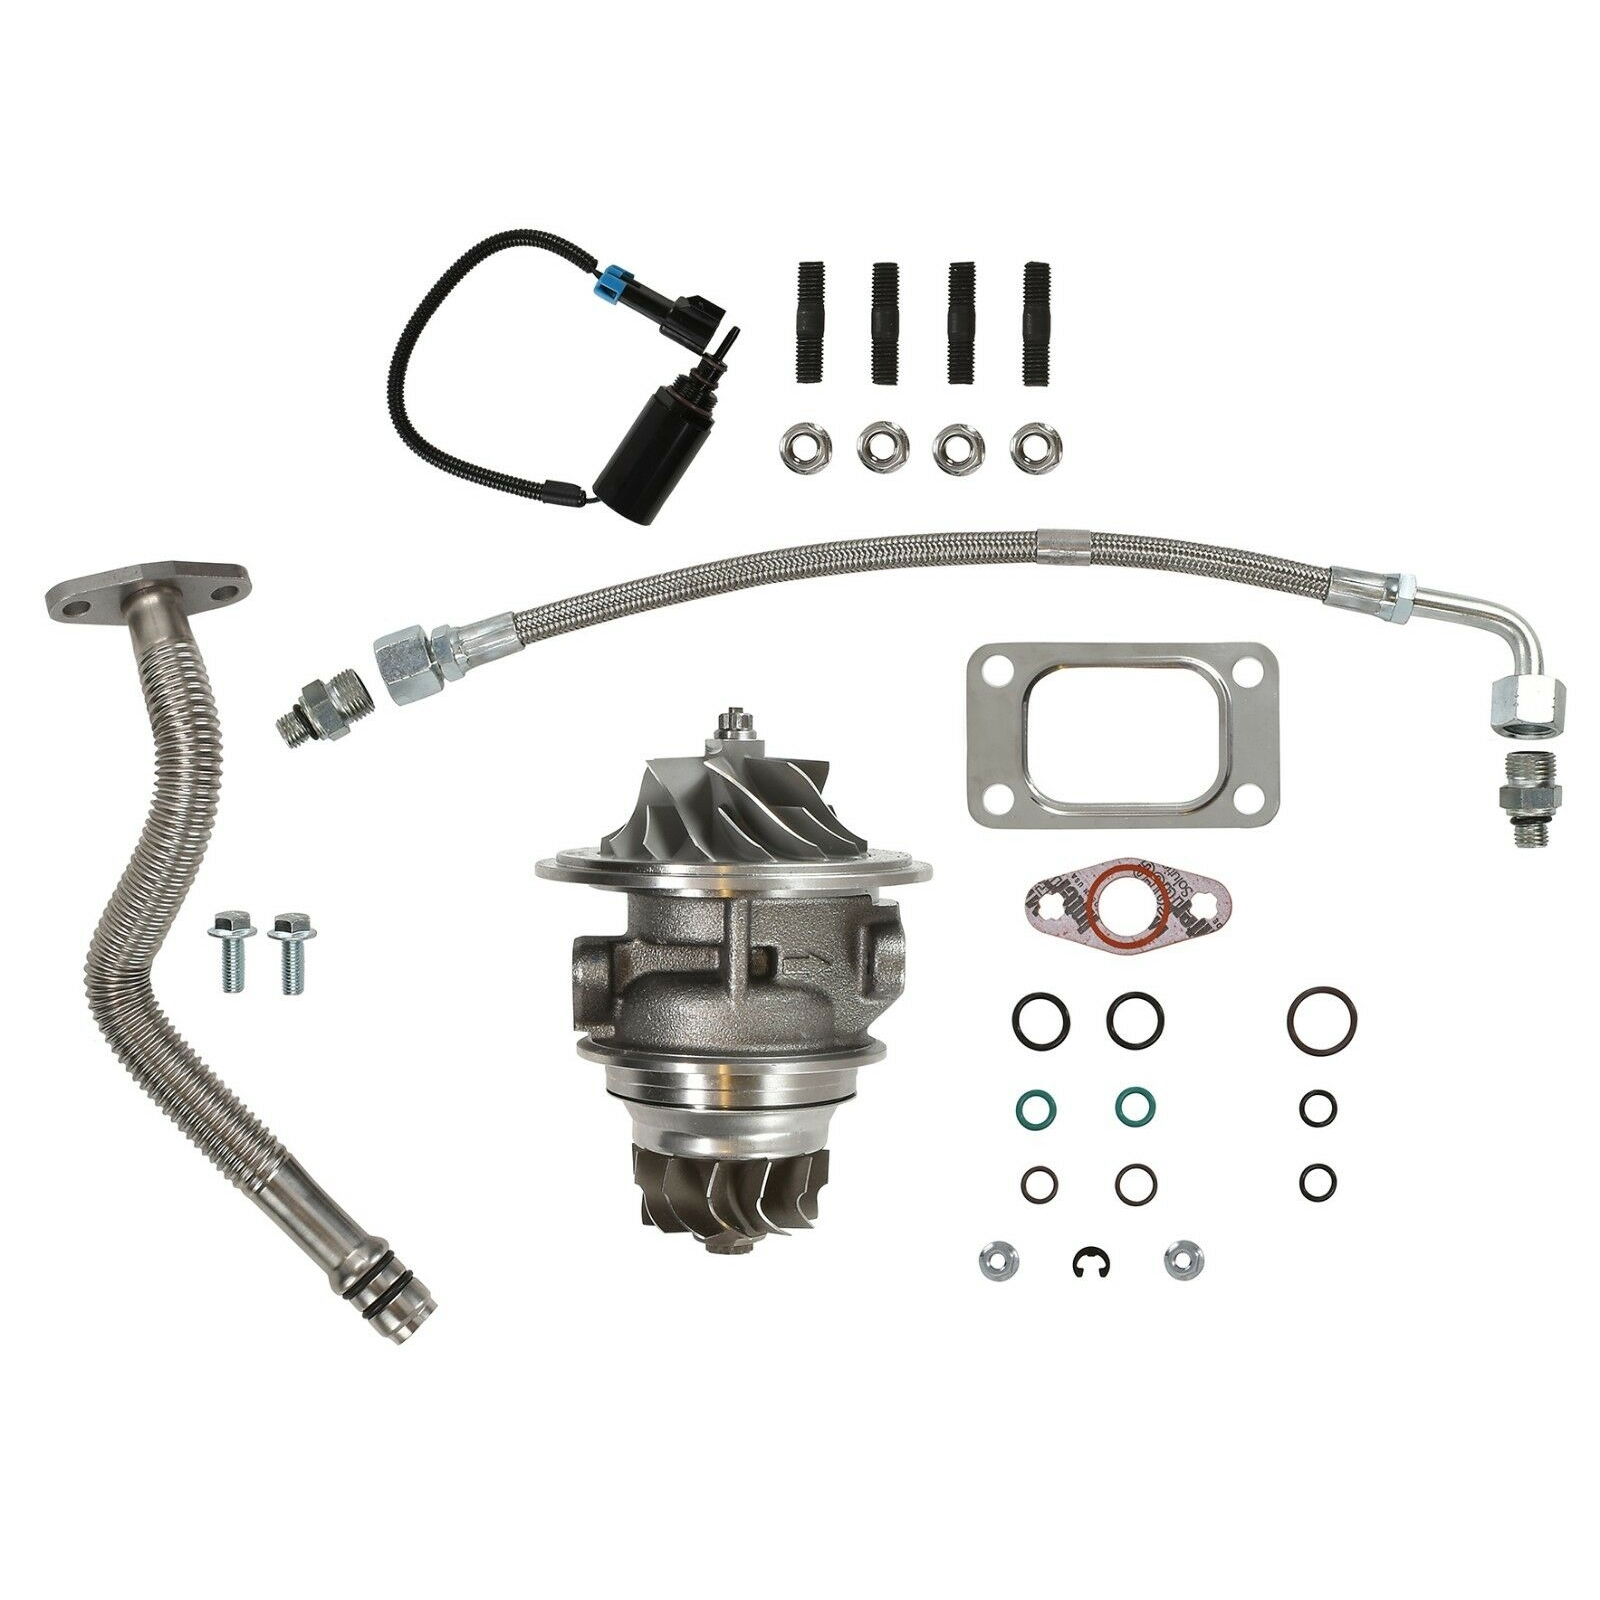 HE351CW Turbo Rebuild Kit Cast CHRA Oil Lines Wastegate Solenoid For 04.5-07 5.9L ISB Dodge Ram Cummins Diesel